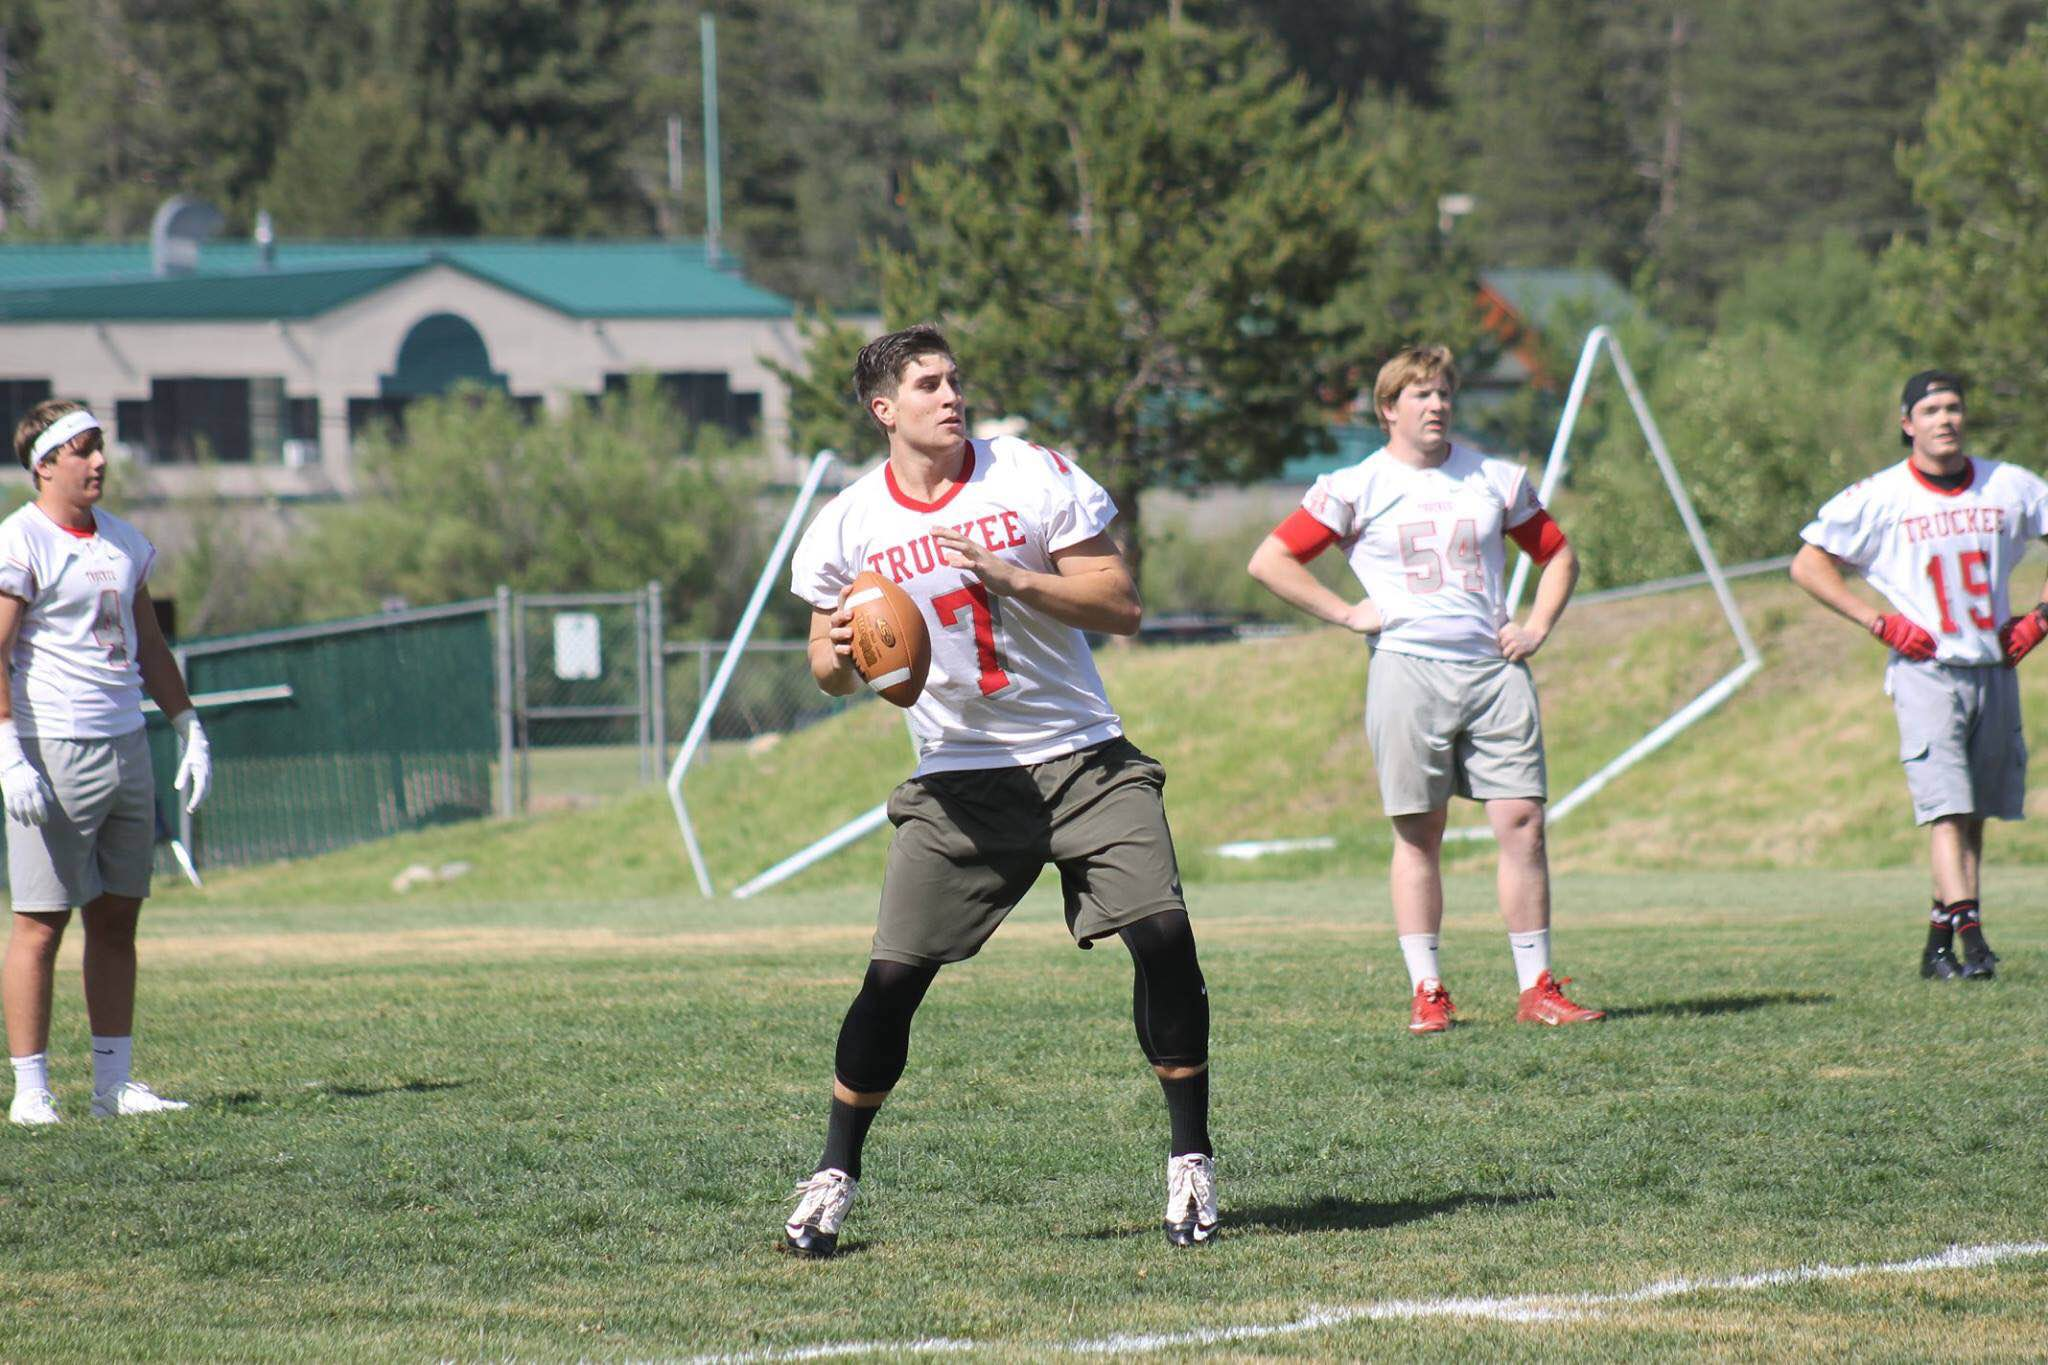 Ben Bolton is arguably the best QB to come through Truckee. He proved why in the Red vs White game. Number 15, Mitch Nelson, looks on in the background…one of Ben's favorite targets.